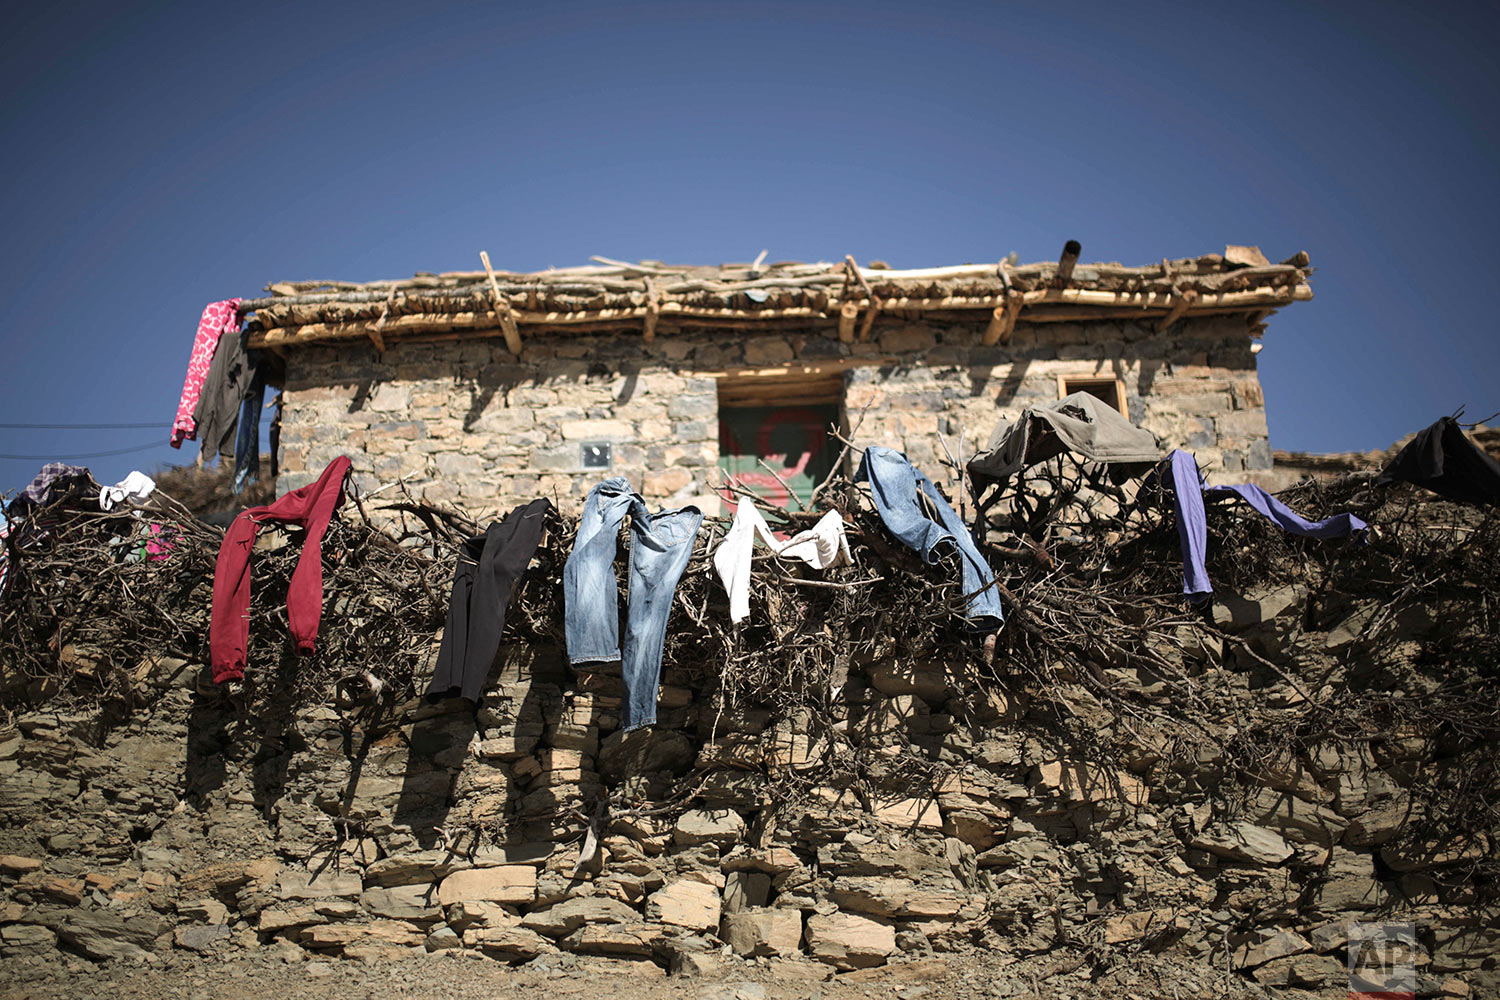 In this Wednesday, Feb. 14, 2018 photo, clothes are put out to dry outside a home after heavy snowfall in Tighanmin, a Middle Atlas village near Azilal, central Morocco. (AP Photo/Mosa'ab Elshamy)